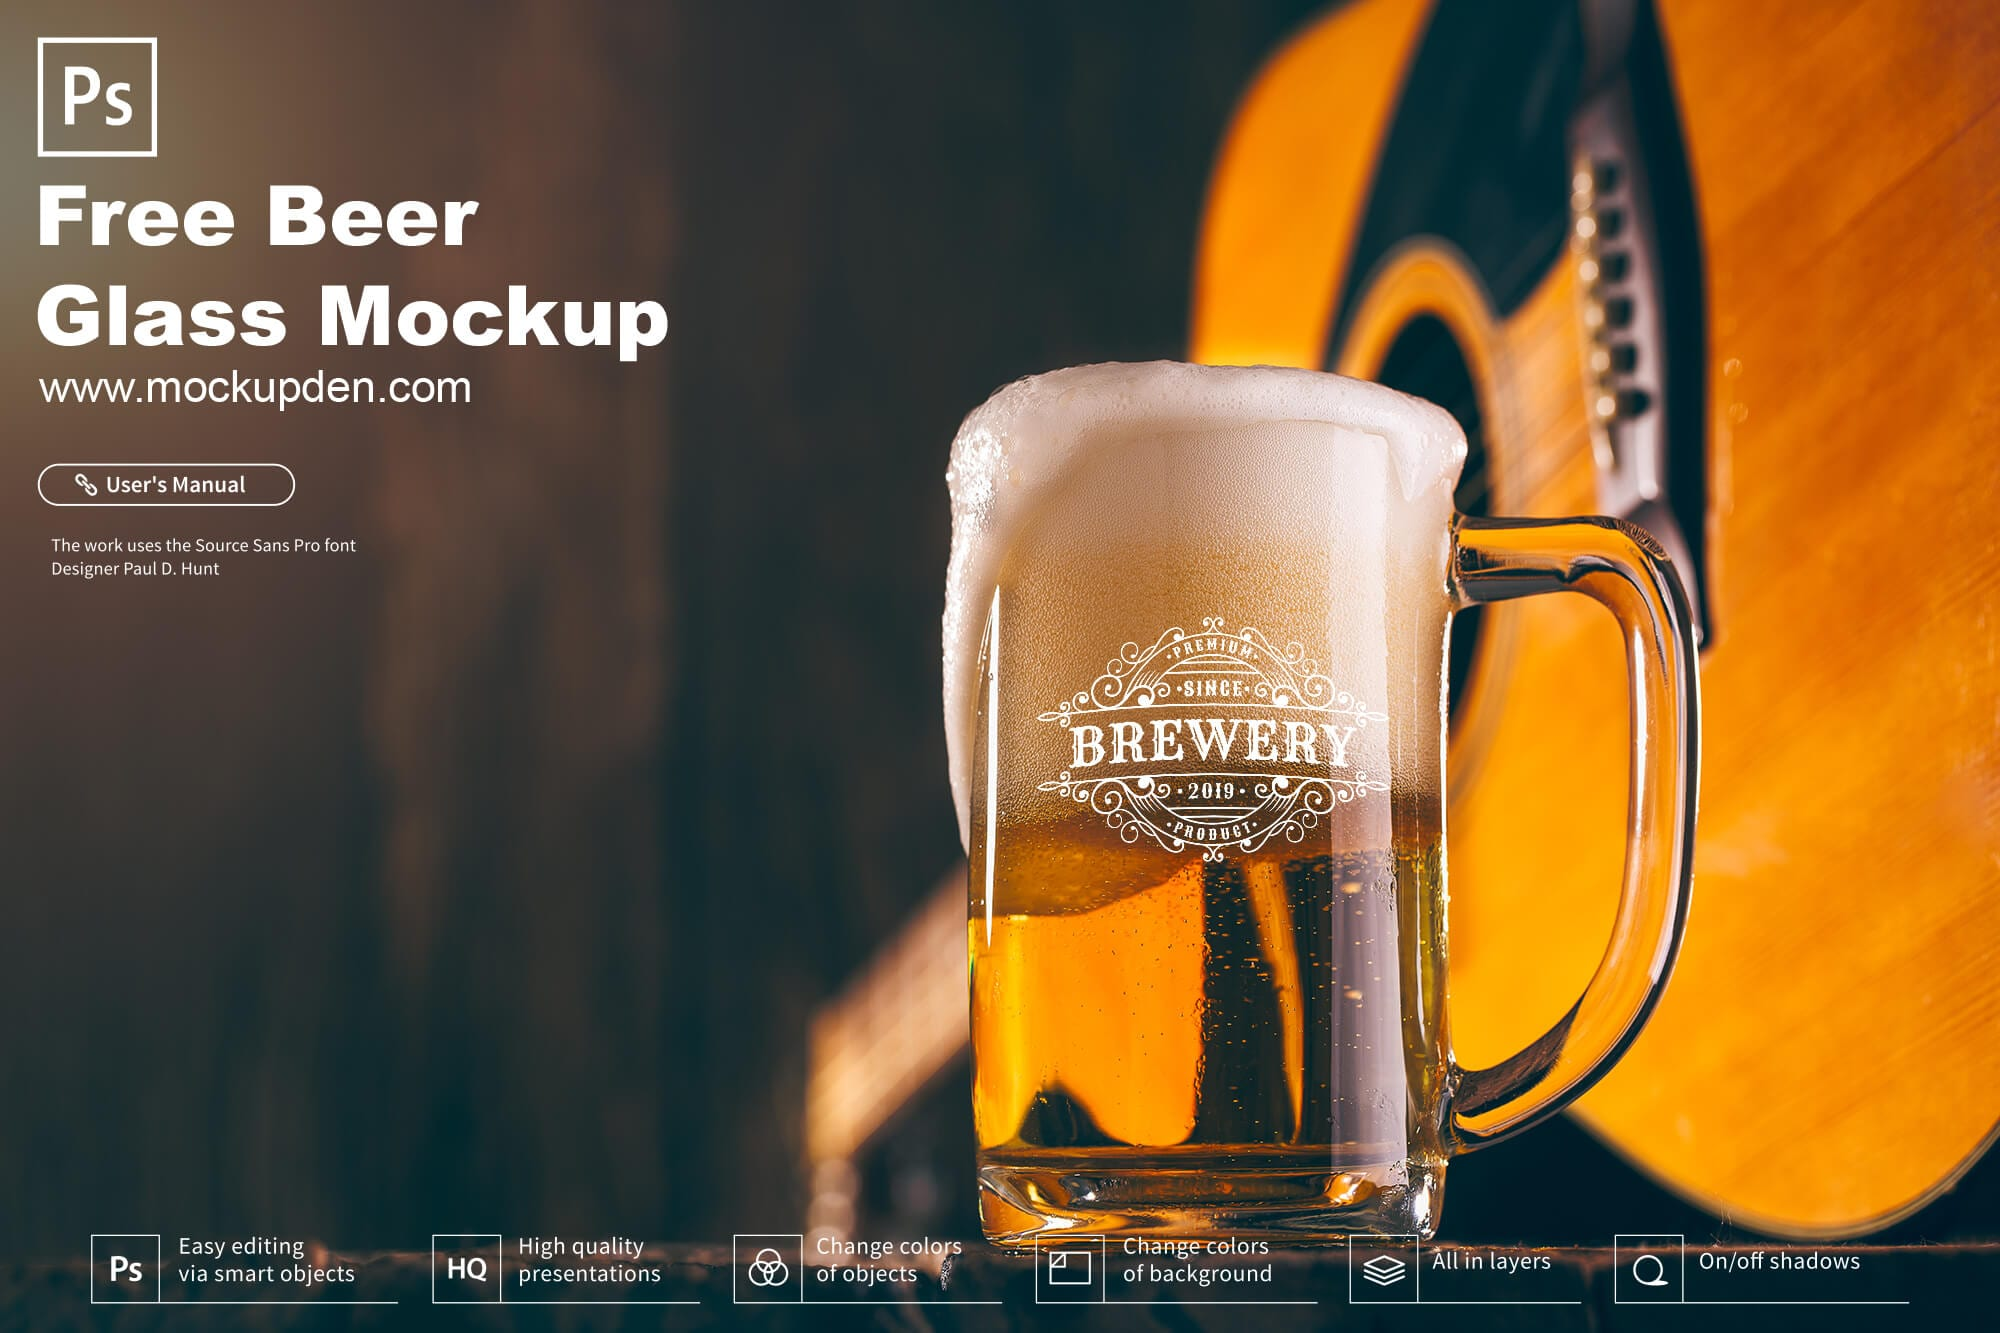 Free Beer Glass Mockup PSD Template